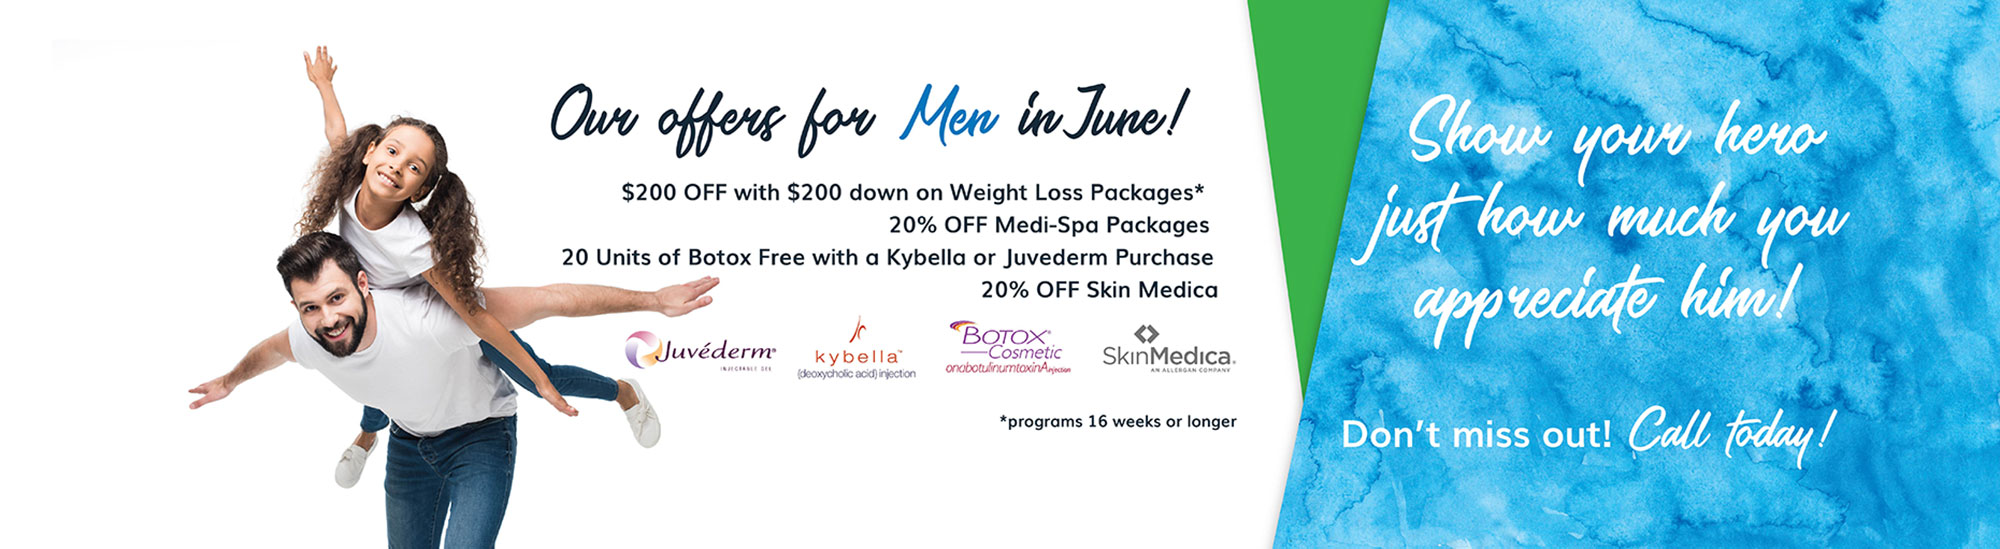 nuYou Weight Loss and more specials for Men during the month of June.